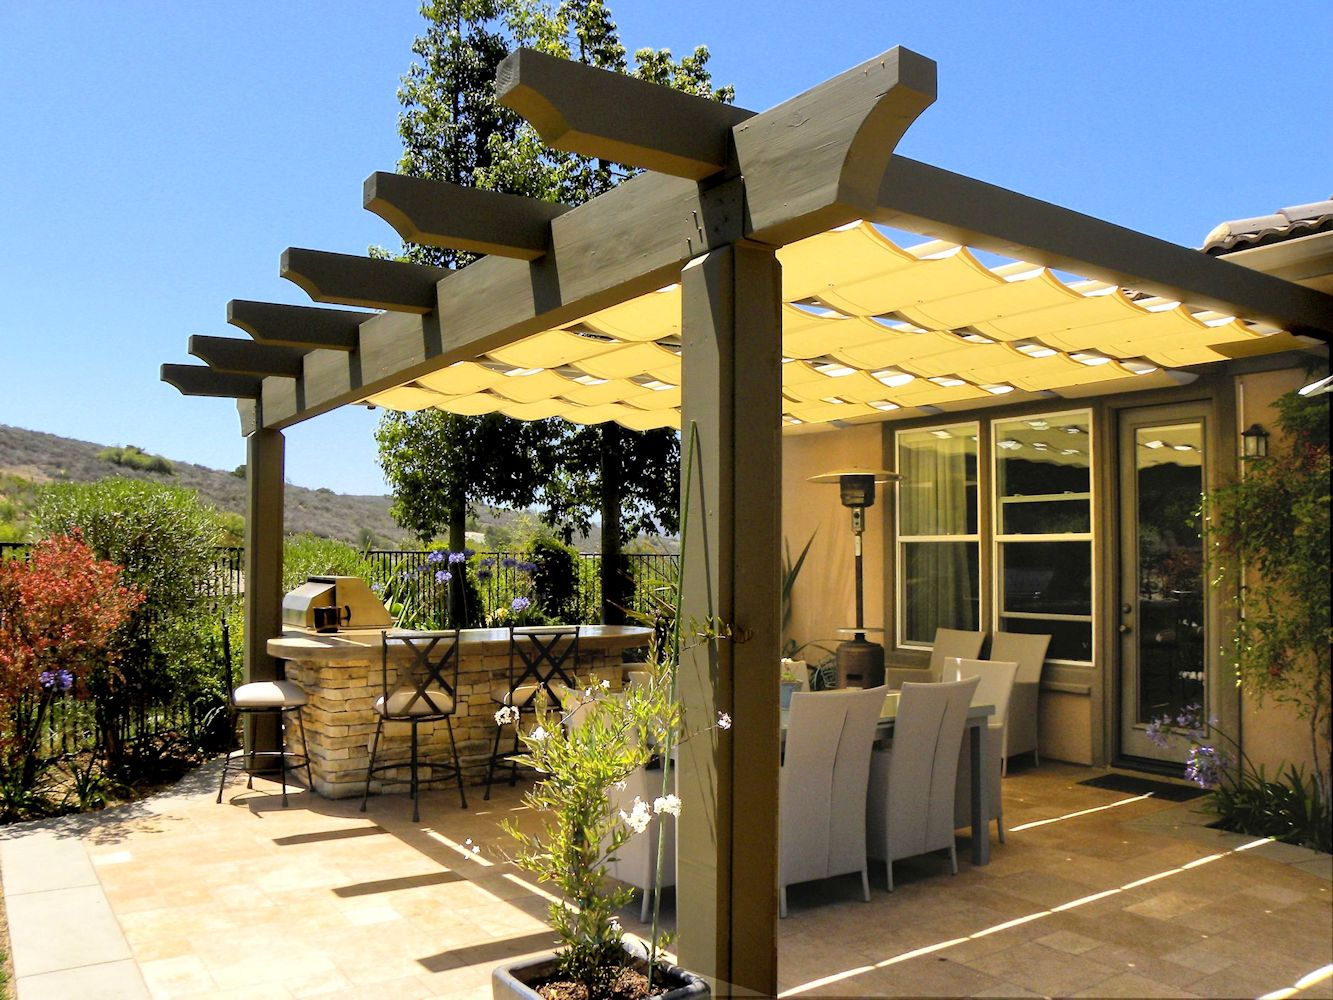 THE ARTISTIC WAY TO DO SHADE | Alpha Canvas & Awning on Canvas Sun Shade Pergola id=65492